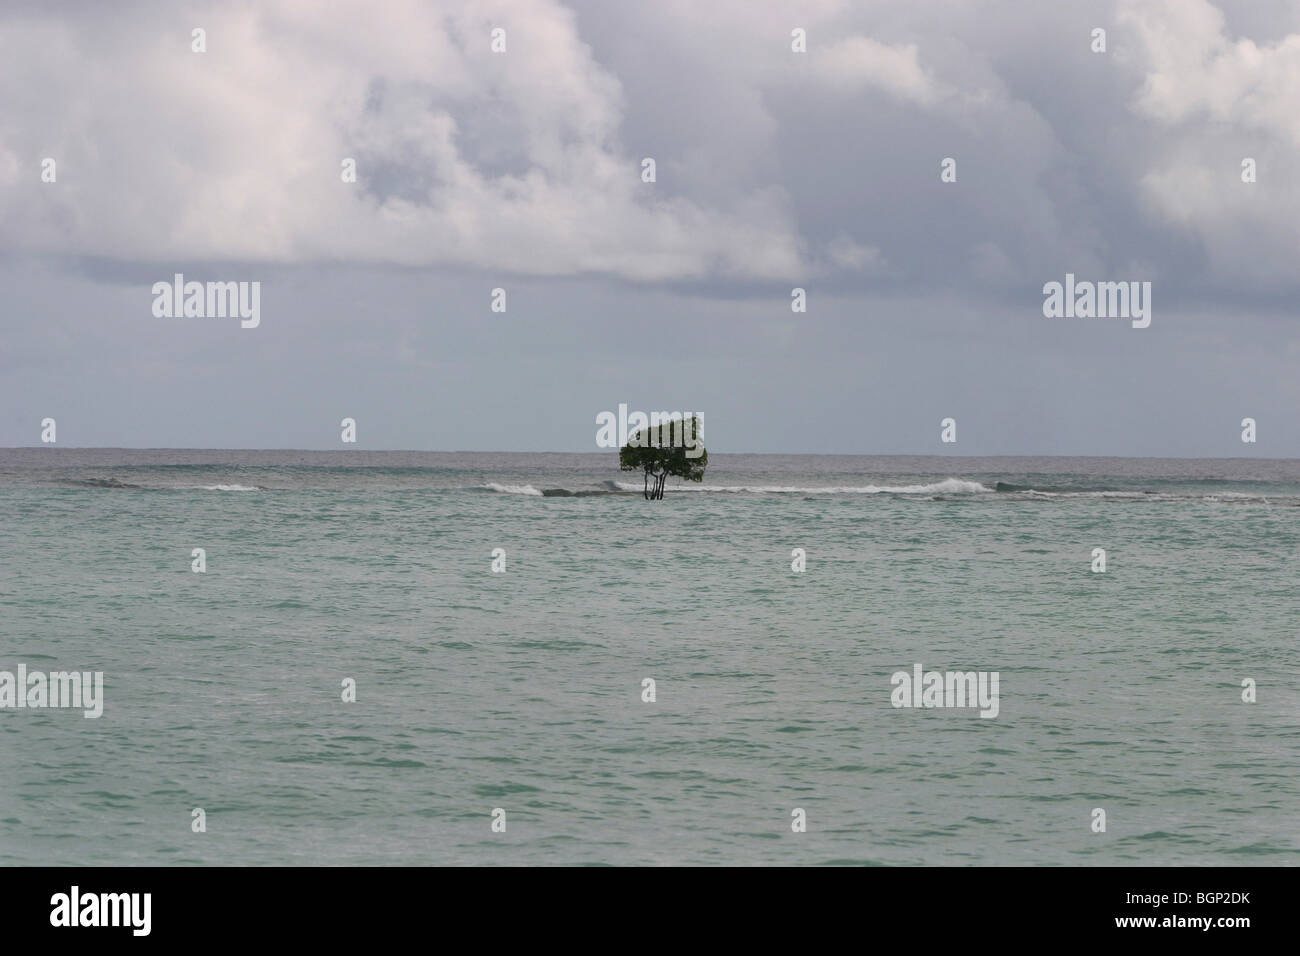 Solitary tree on the beach on the island of Kiribati in the Pacific Ocean - Stock Image